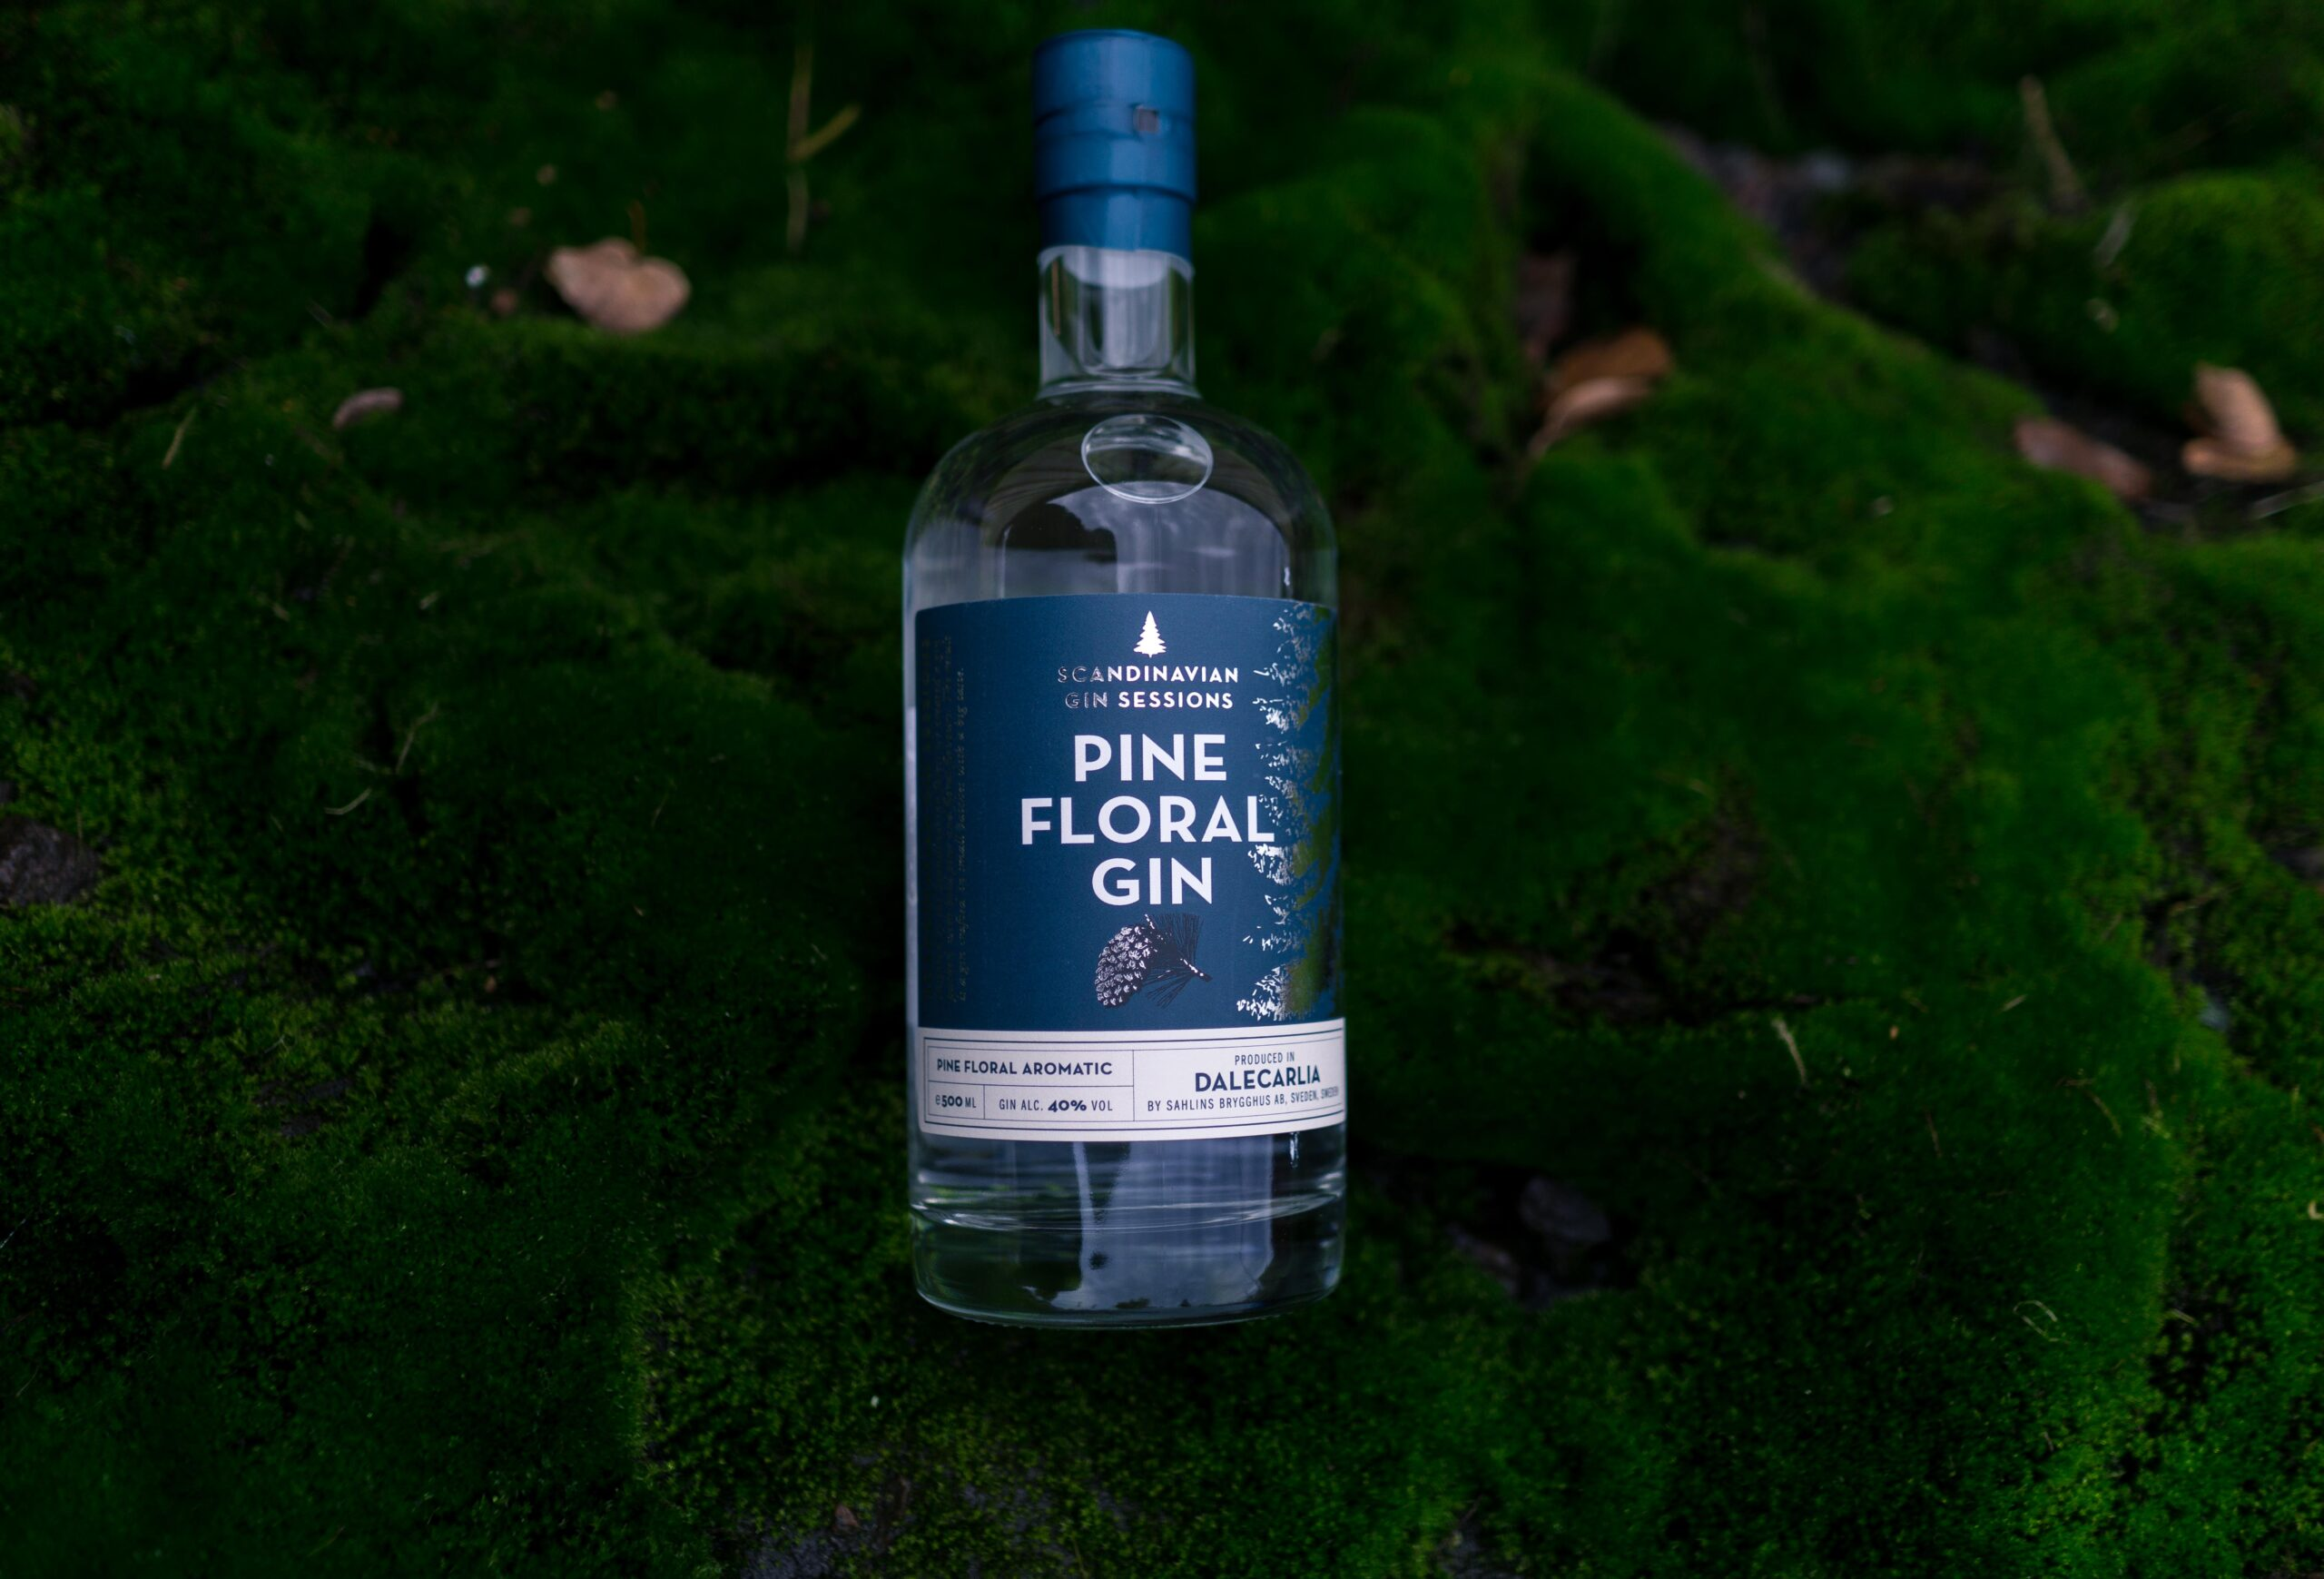 Scandinavian Gin sessions Pine floral gin